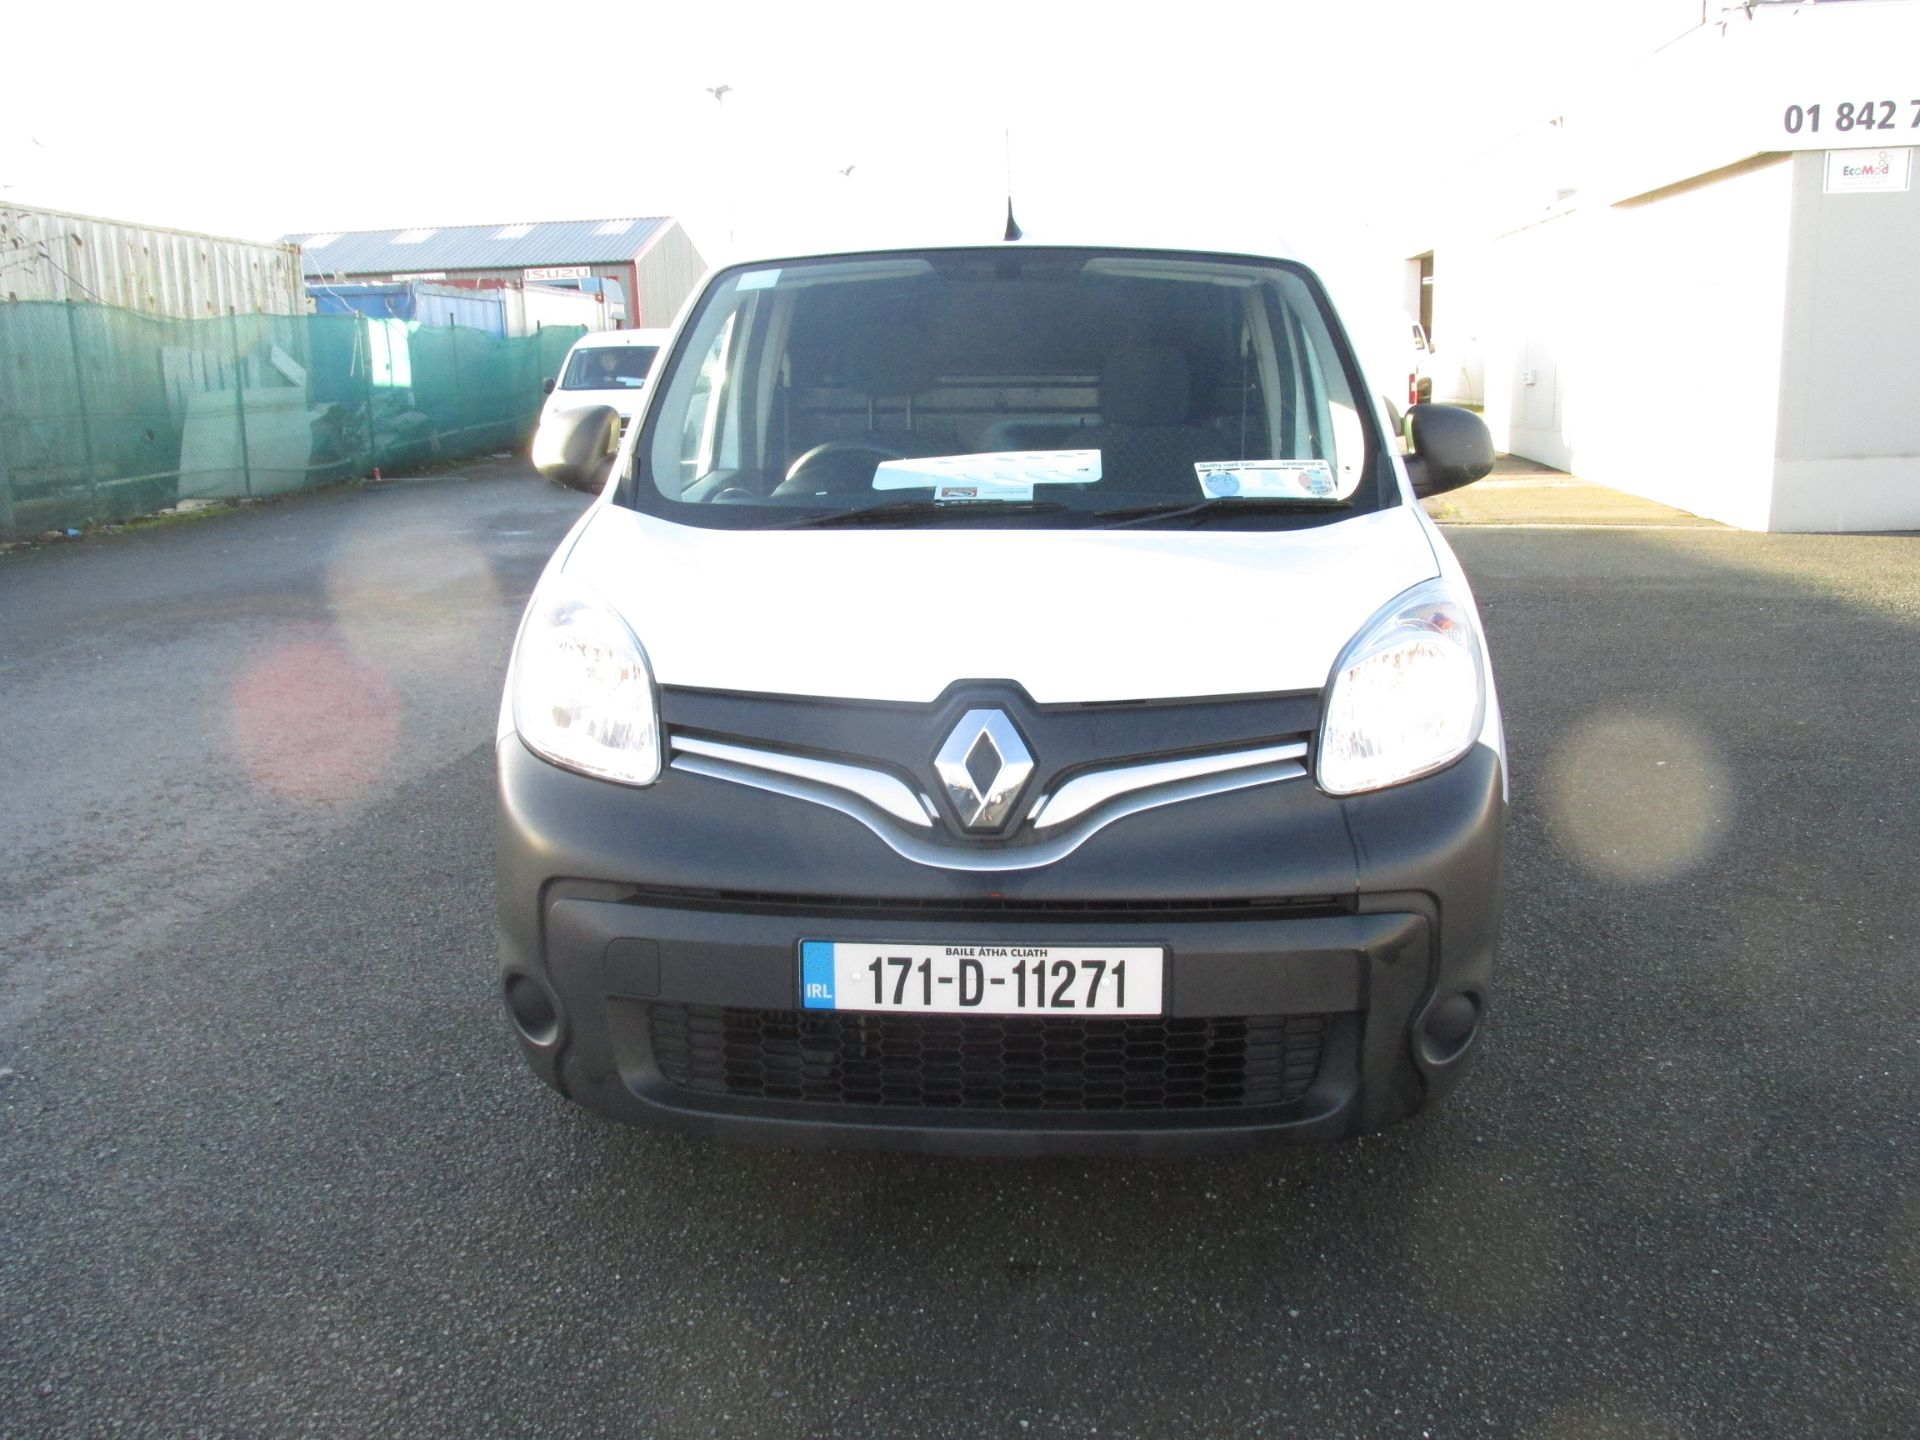 2017 Renault Kangoo ML19 Energy DCI 75 Business 2D click and collect call sales for more info (171D11271) Image 2